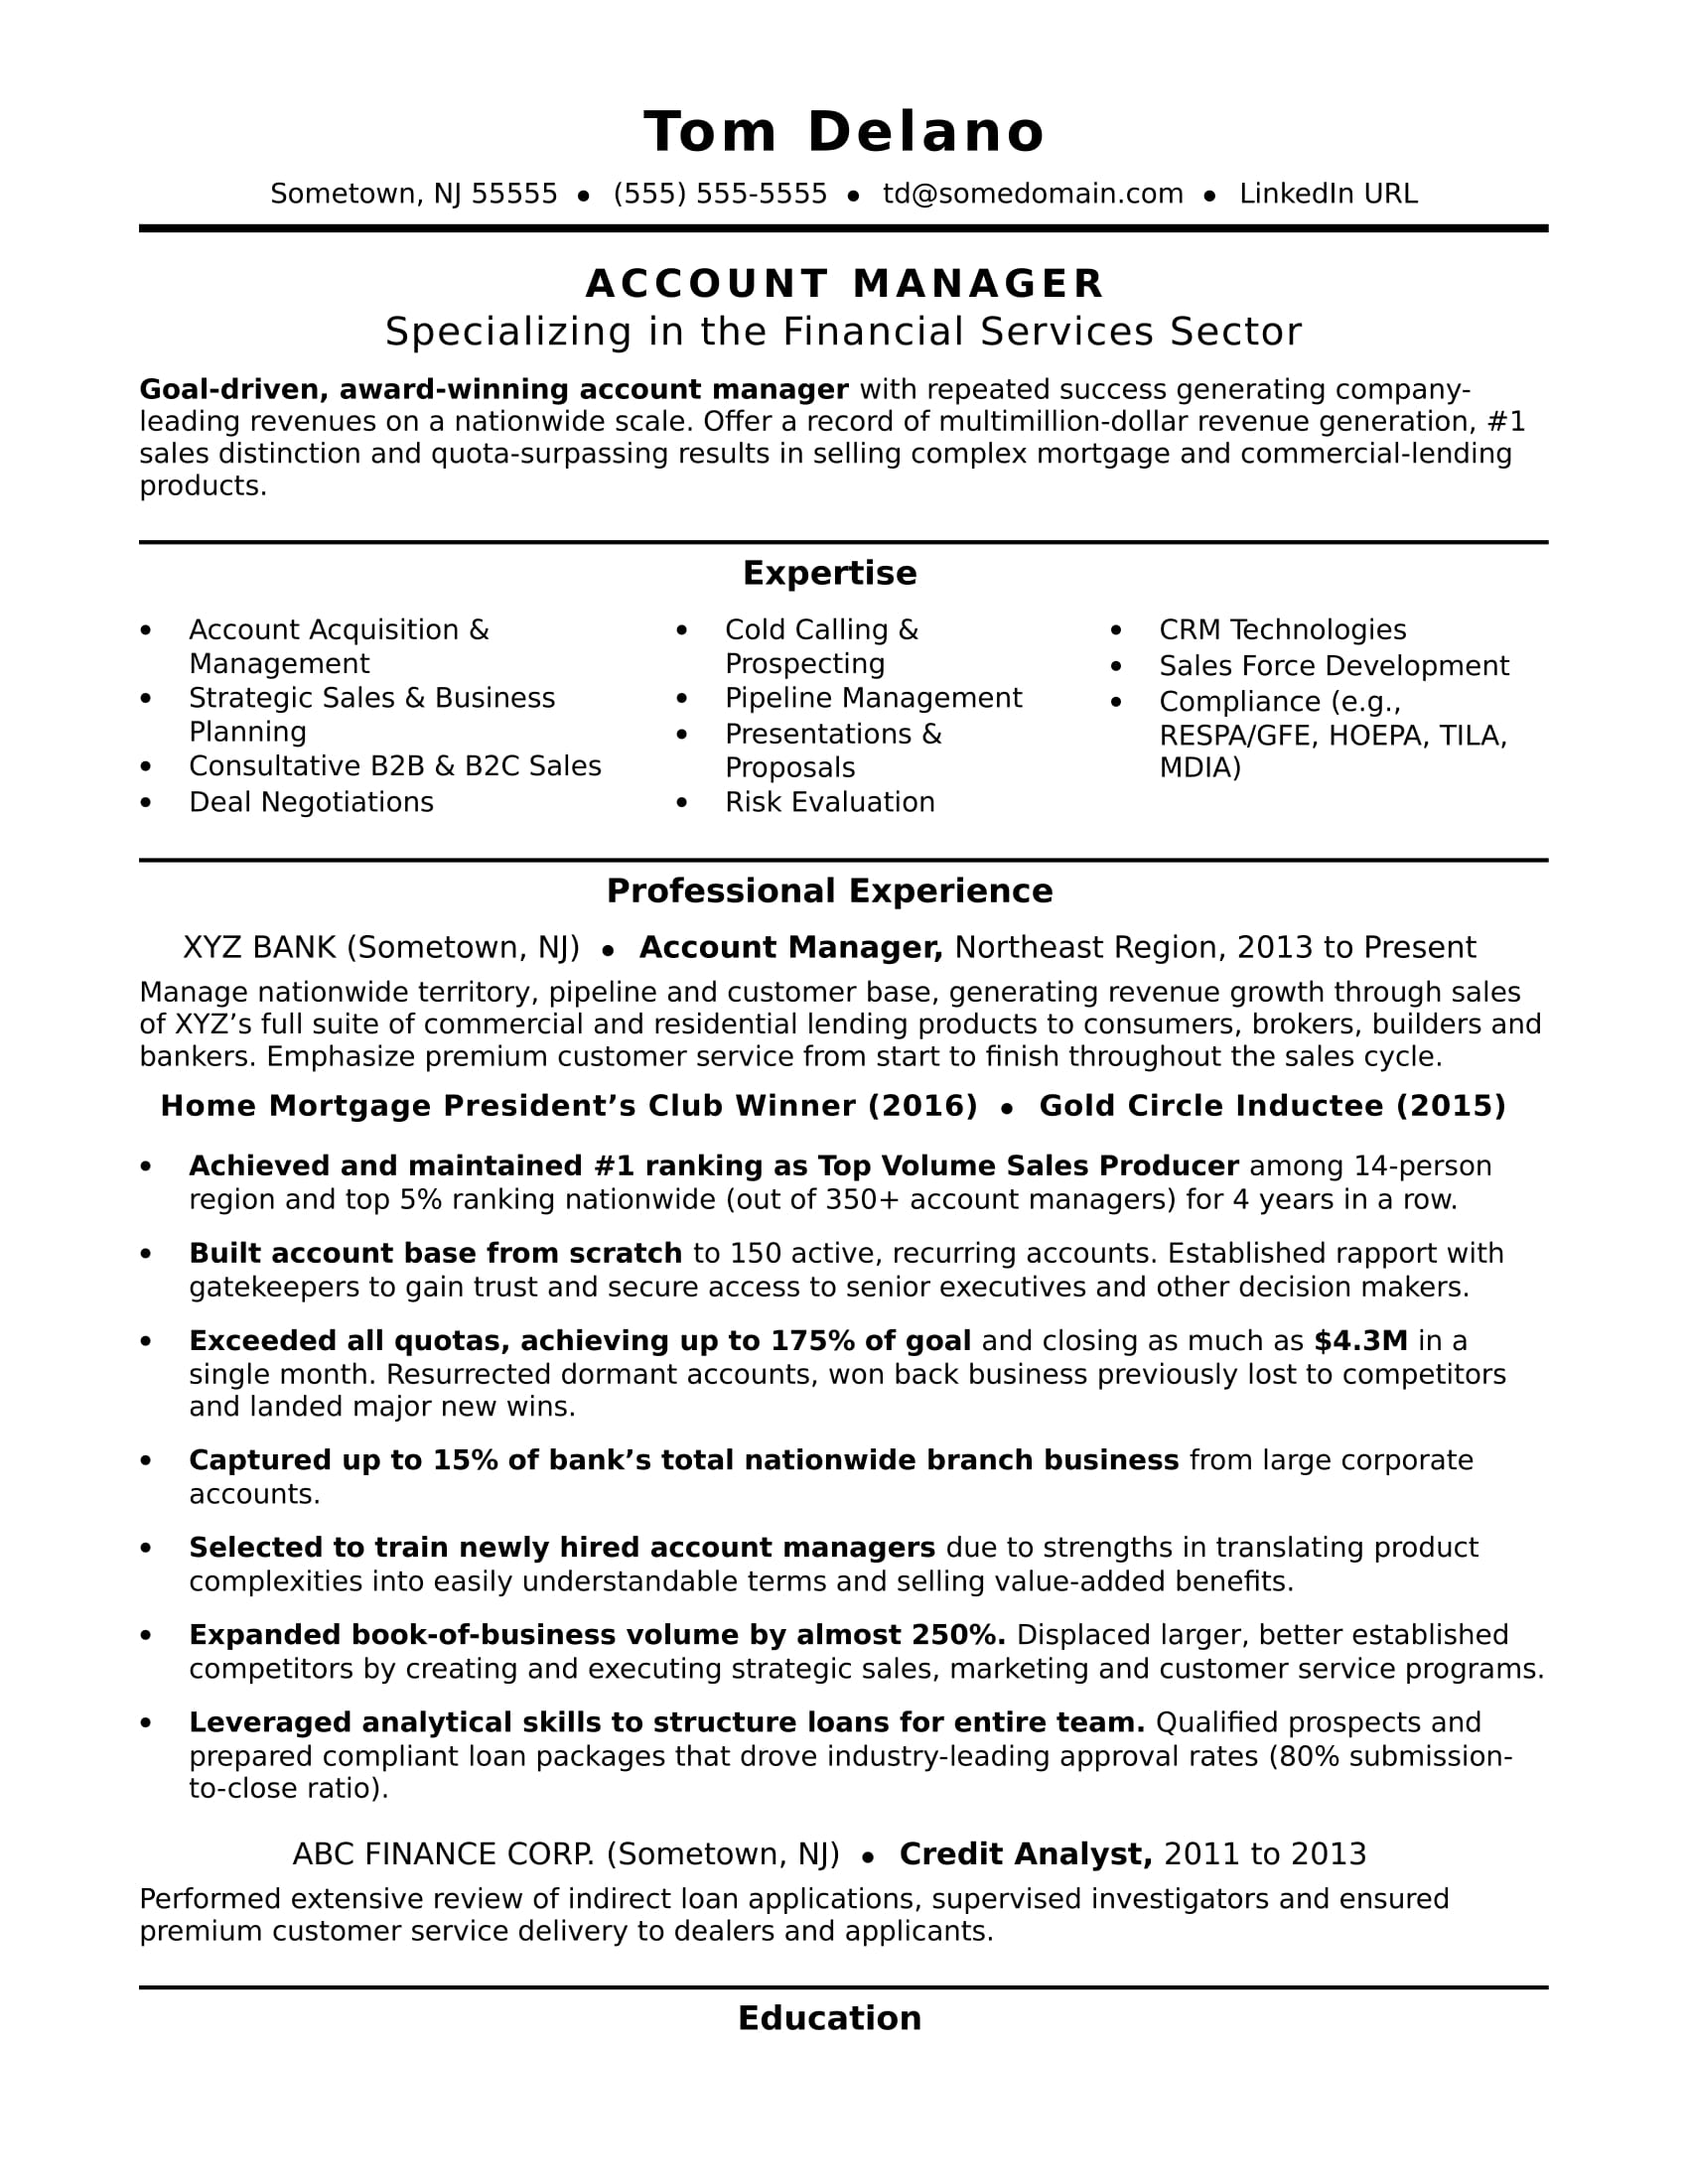 account manager resume sample monster management examples consultation services technical Resume Management Resume Examples 2016